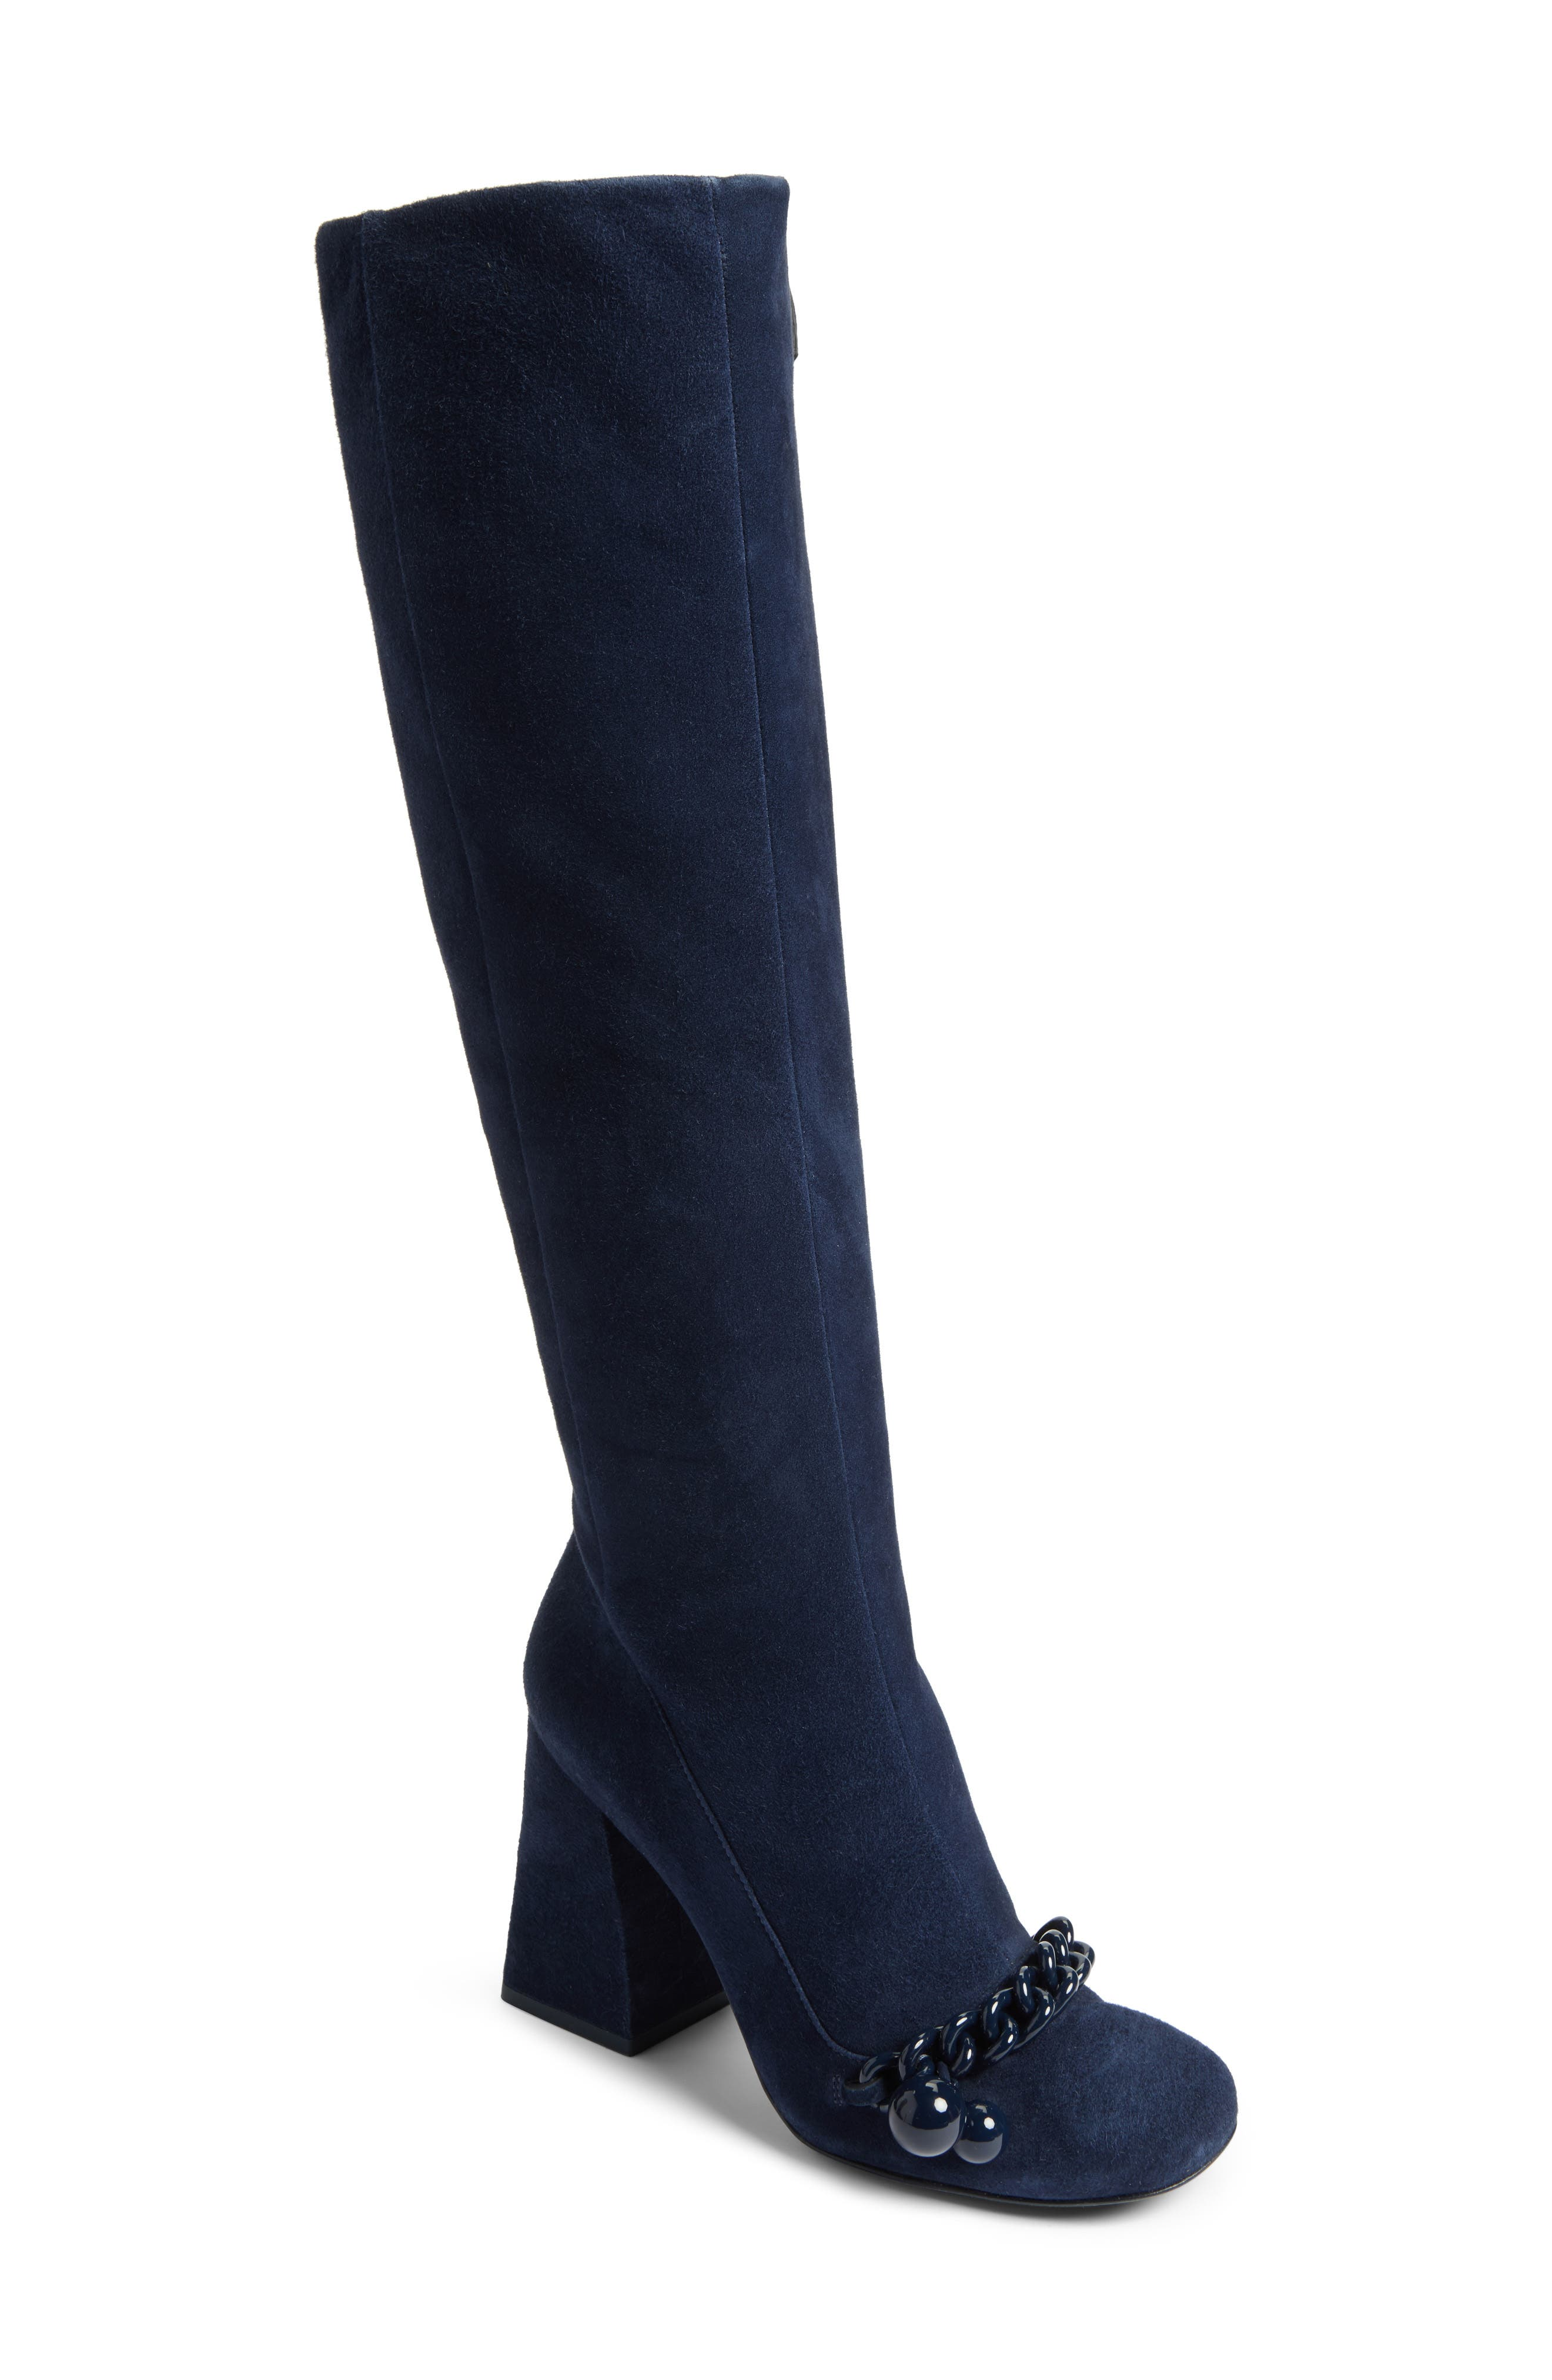 Main Image - Tory Burch Addison Flared Heel Boot (Women)